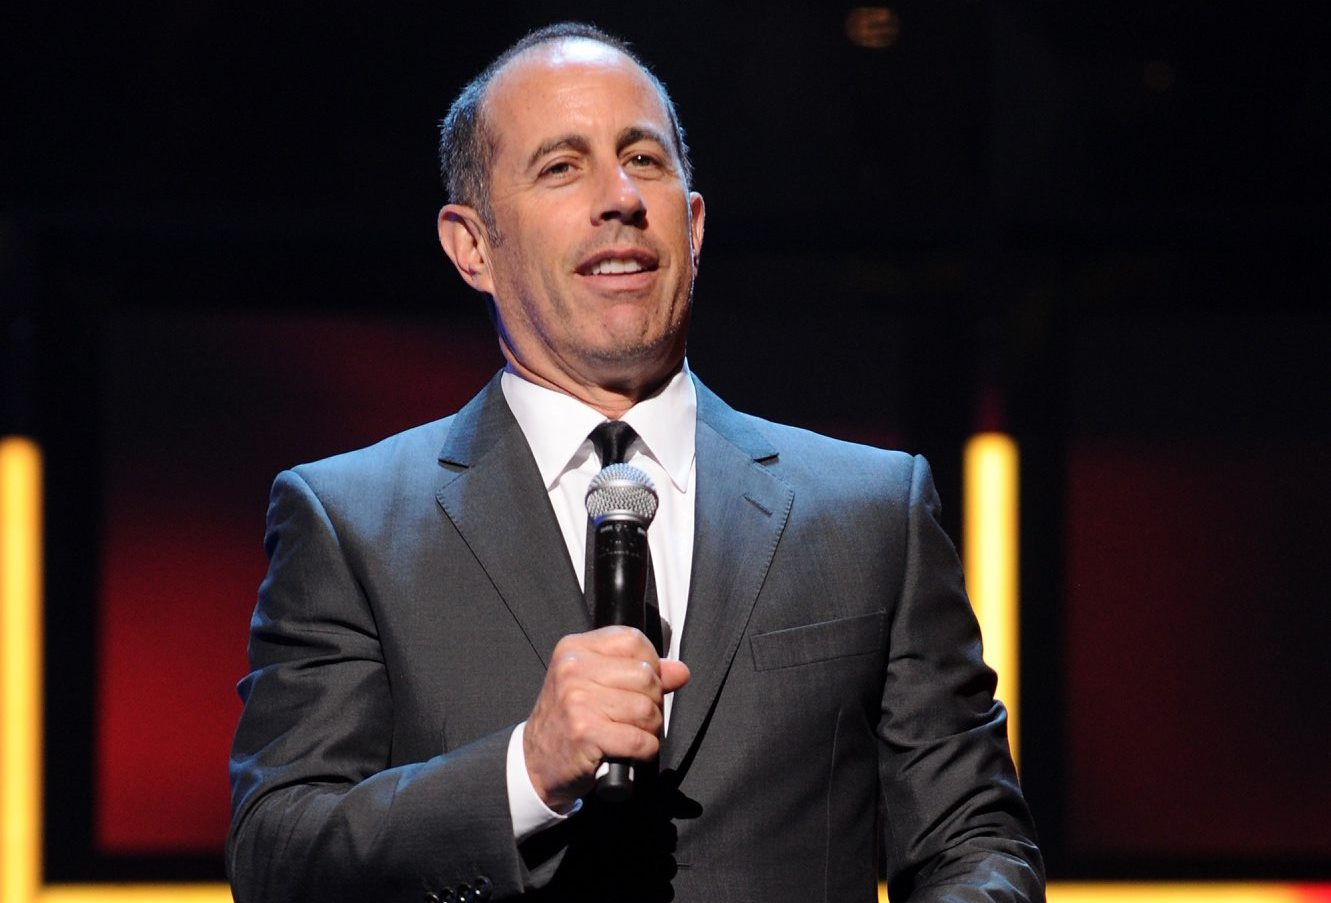 Jerry Seinfeld speaks onstage at the 2015 Hulu Upfront Presentation at Hammerstein Ballroom on April 29, 2015, in New York City. (Getty Images)